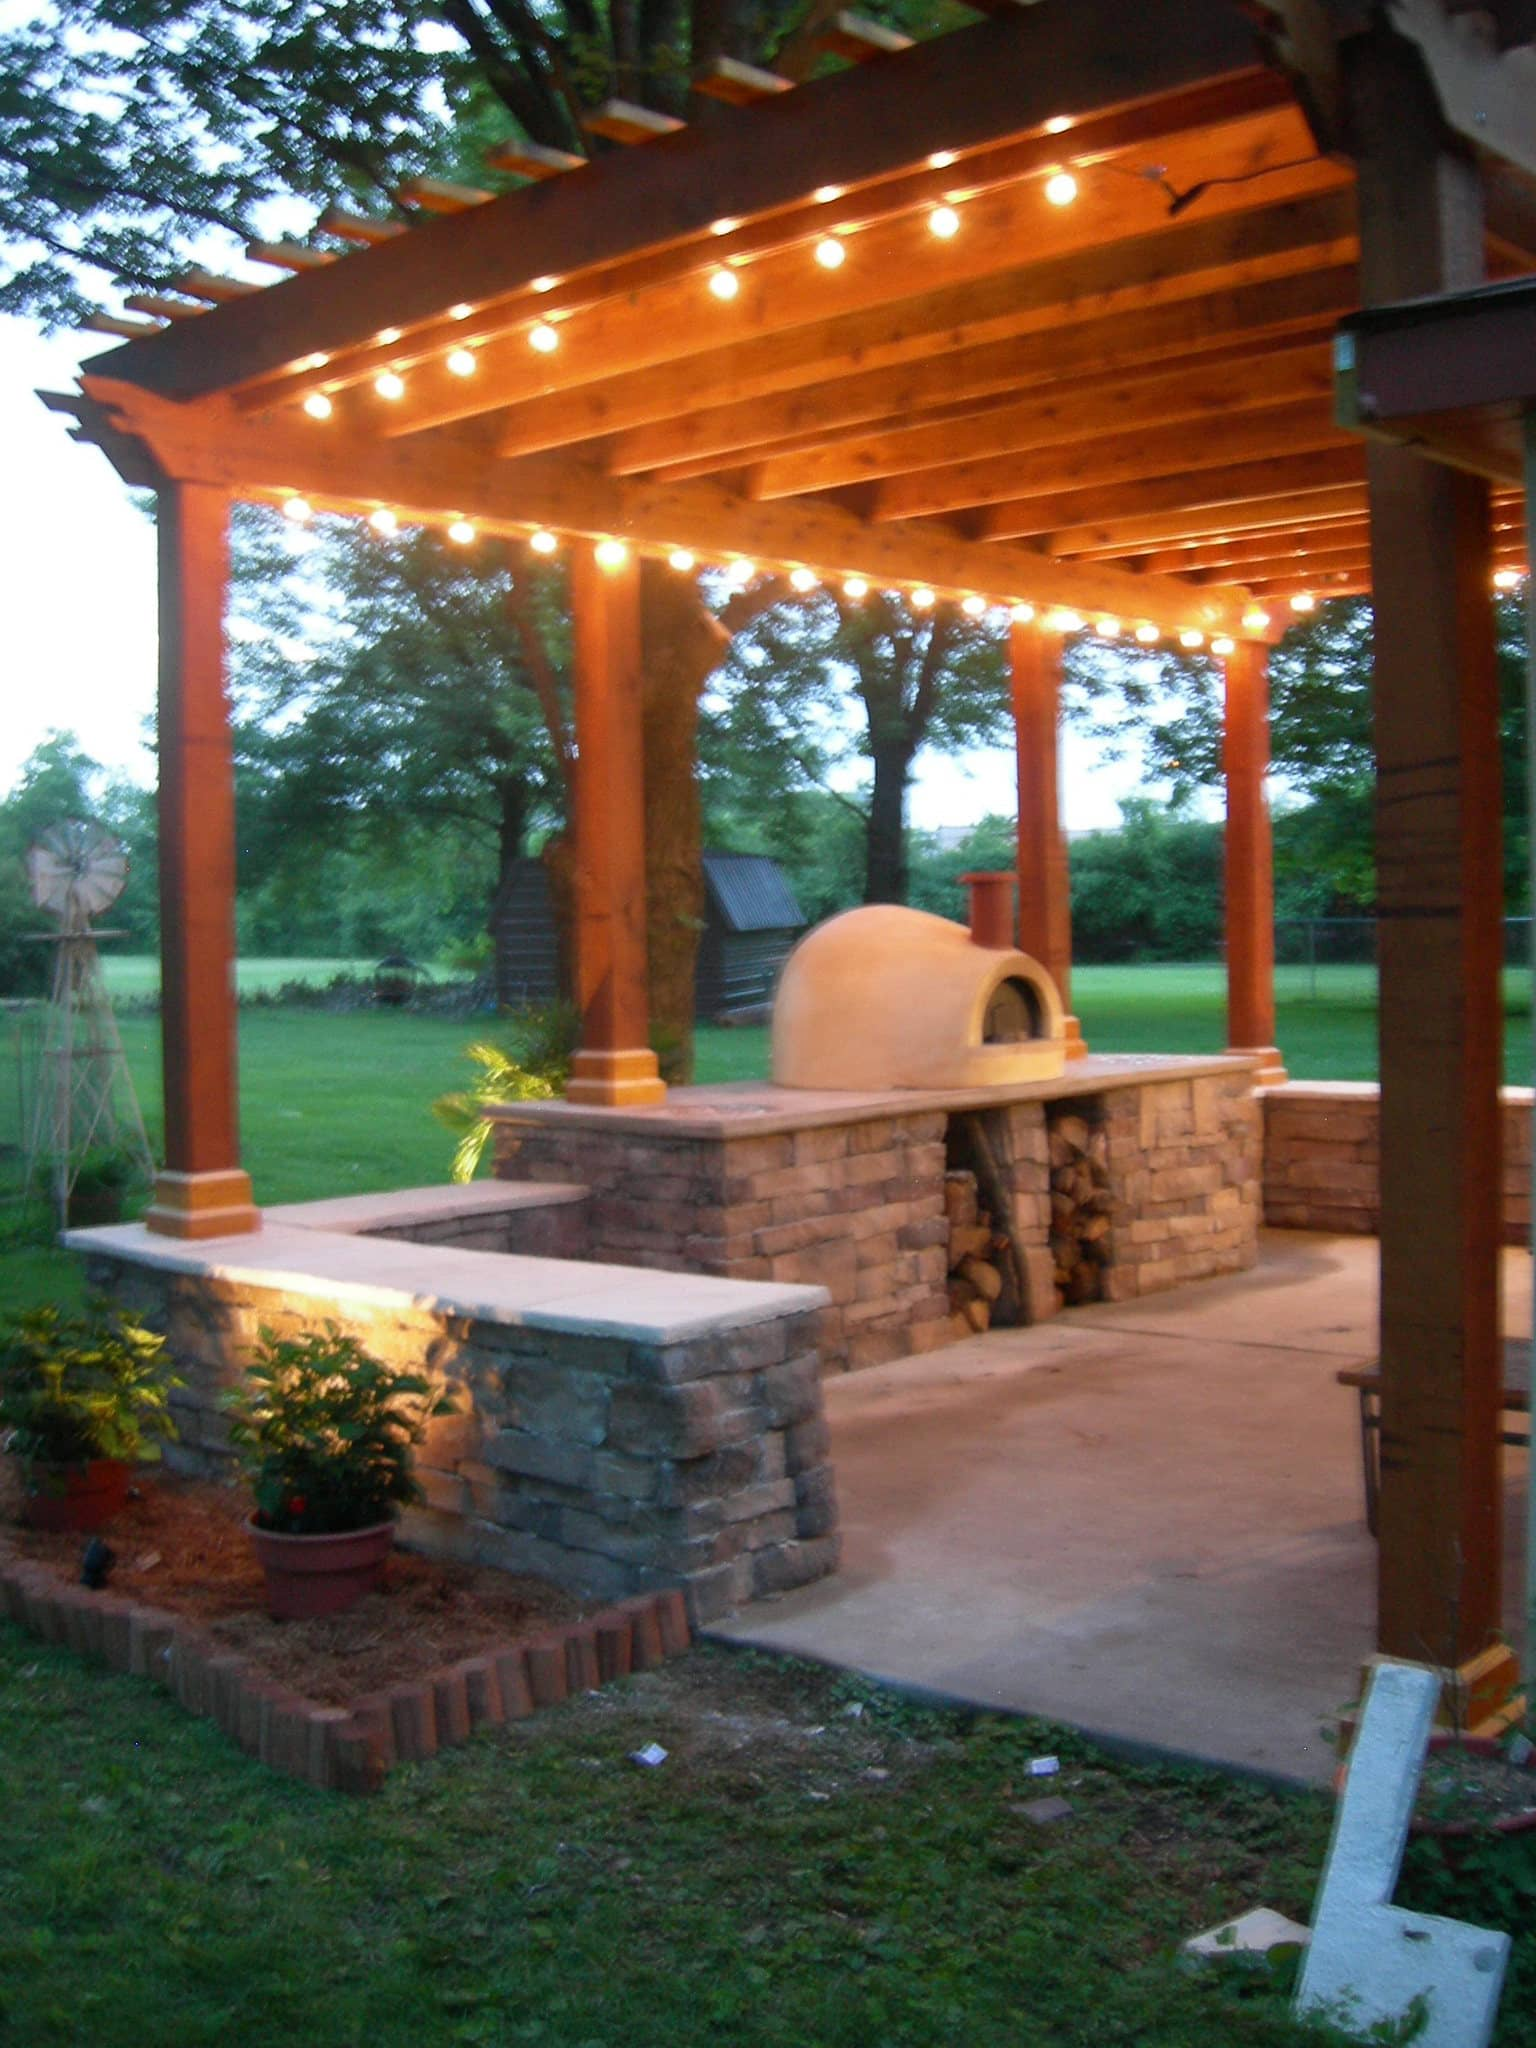 My Great Outdoors: Paula's Pizza Patio Makeover: gallery image 4